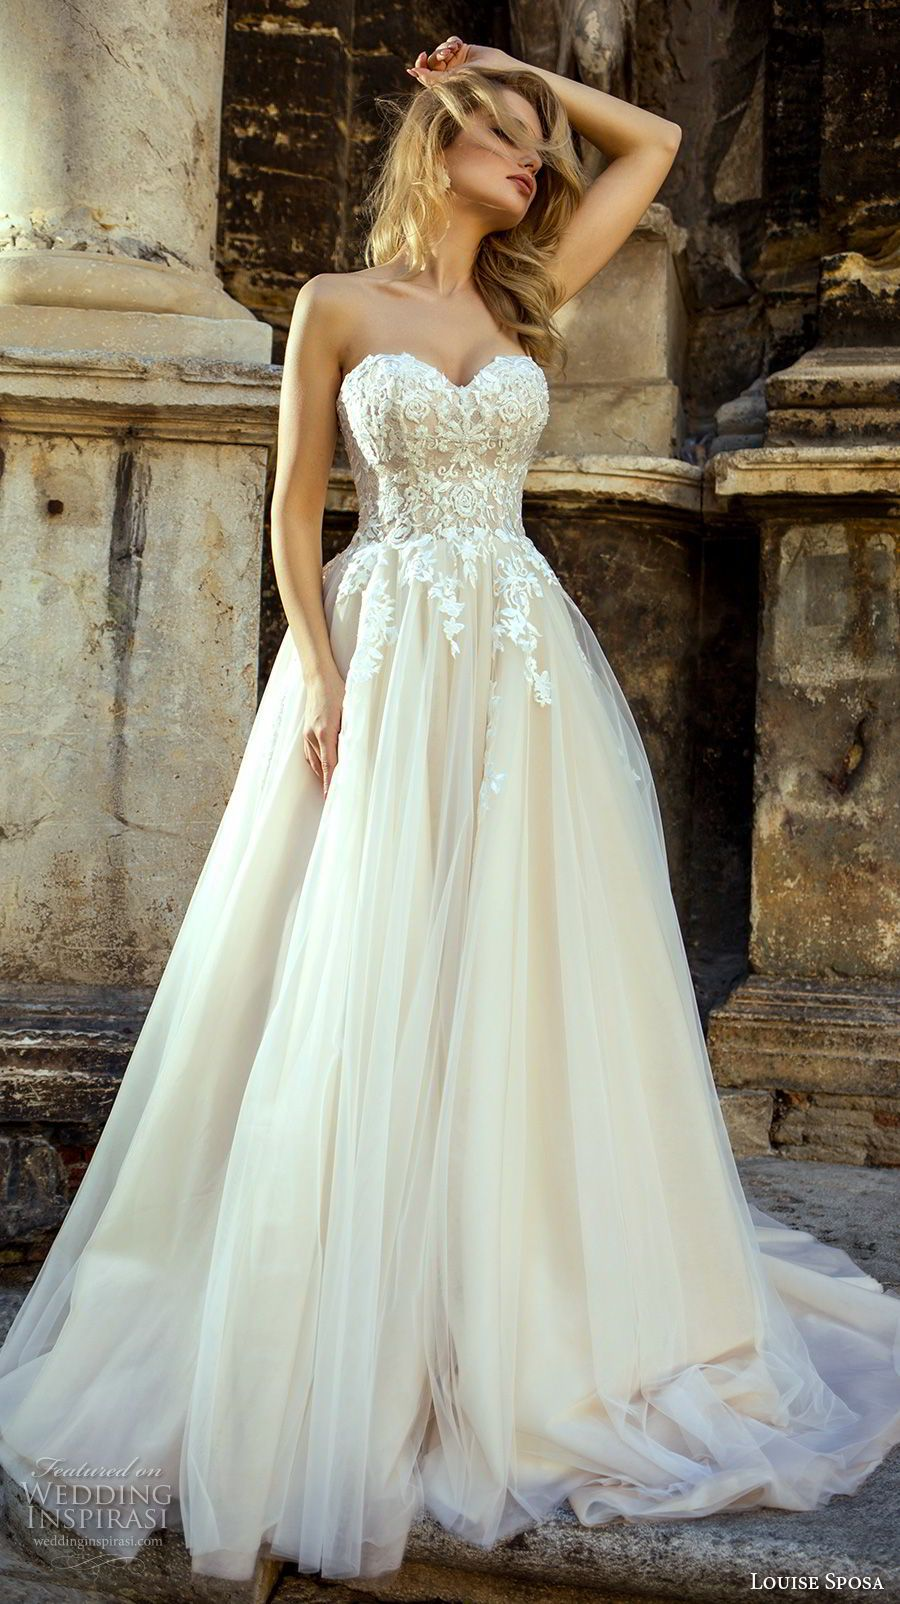 2020 Best Wedding Dress New Dress Wedding Reception Dress New Bridal Dress